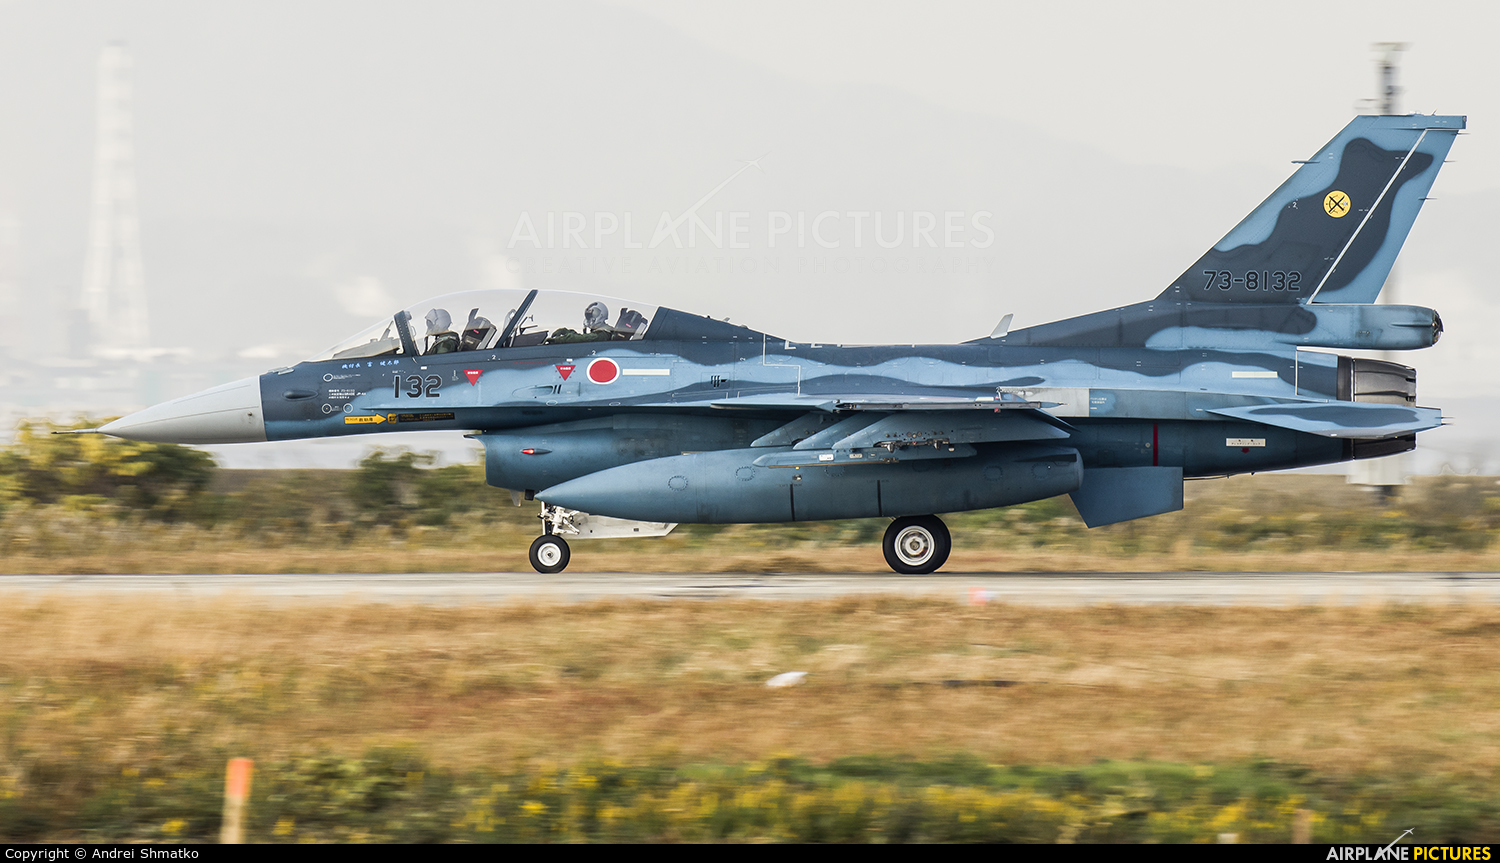 Japan - Air Self Defence Force 73-8132 aircraft at Tsuiki AB